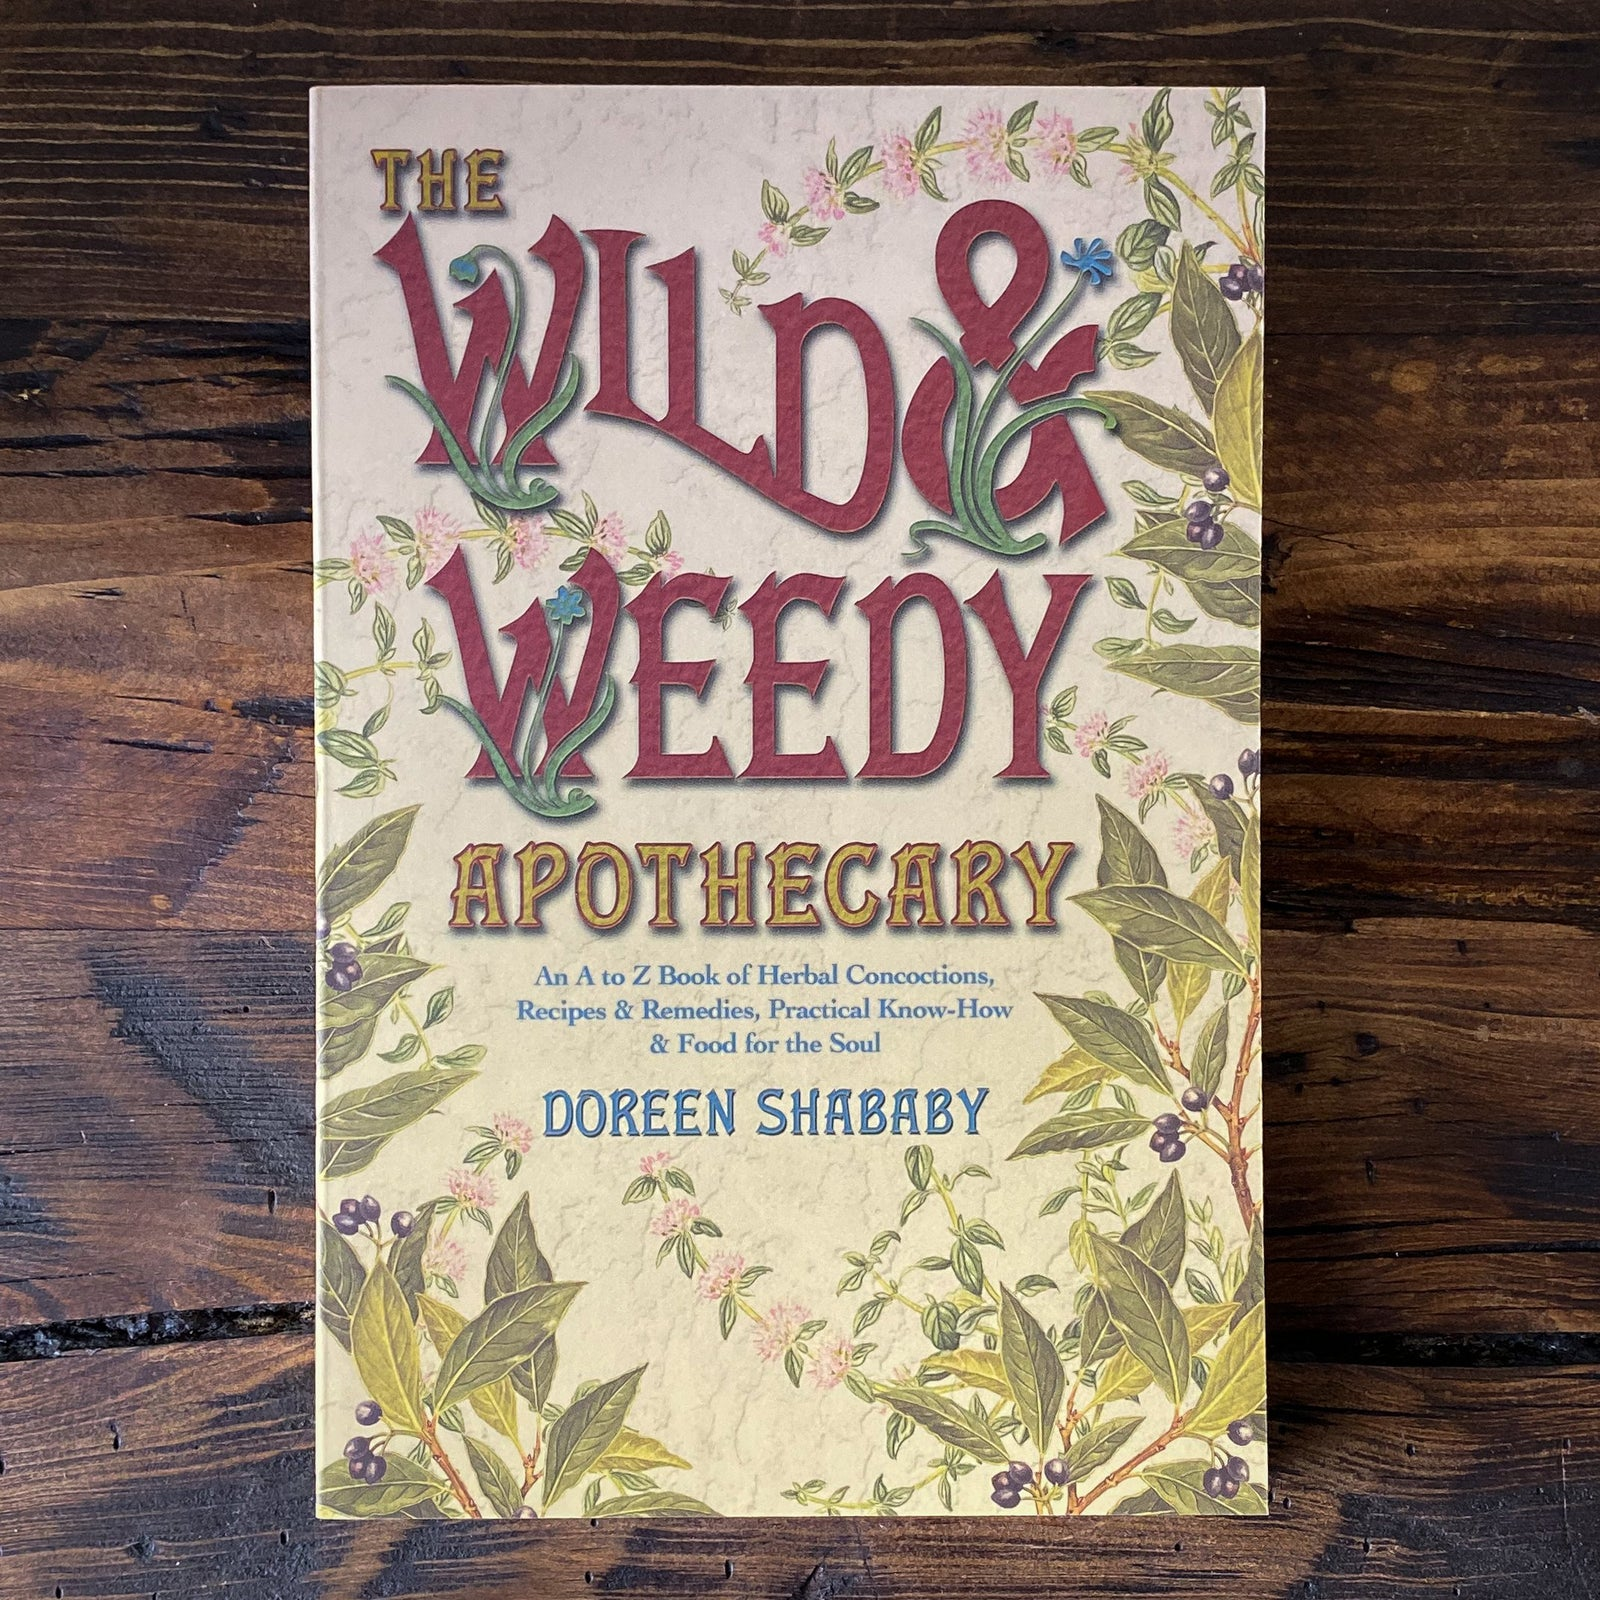 The Wild & Weedy Apothecary - An A to Z Book of Herbal Concoctions